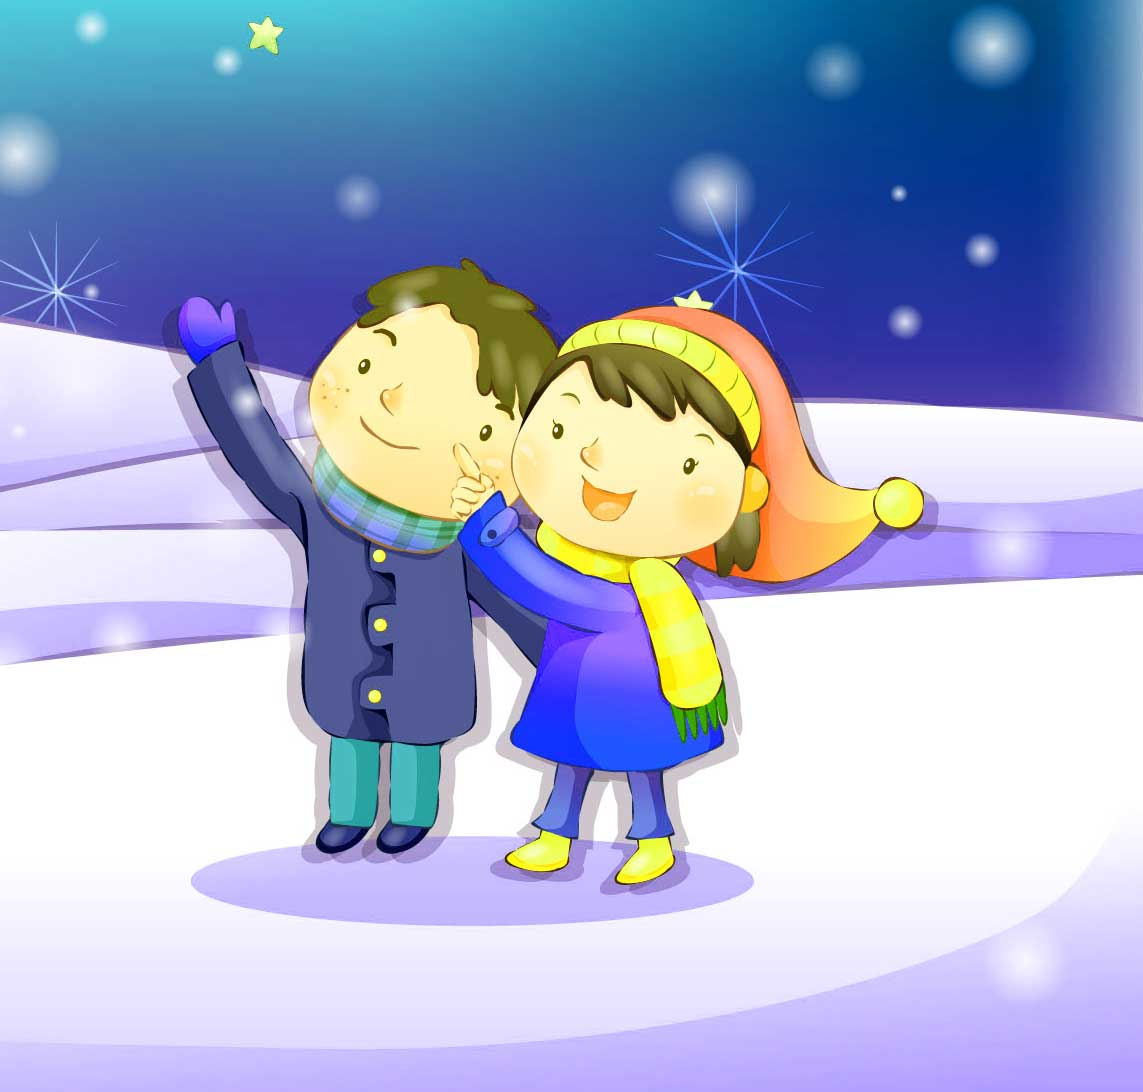 Free Cute Cartoon Dp Hd